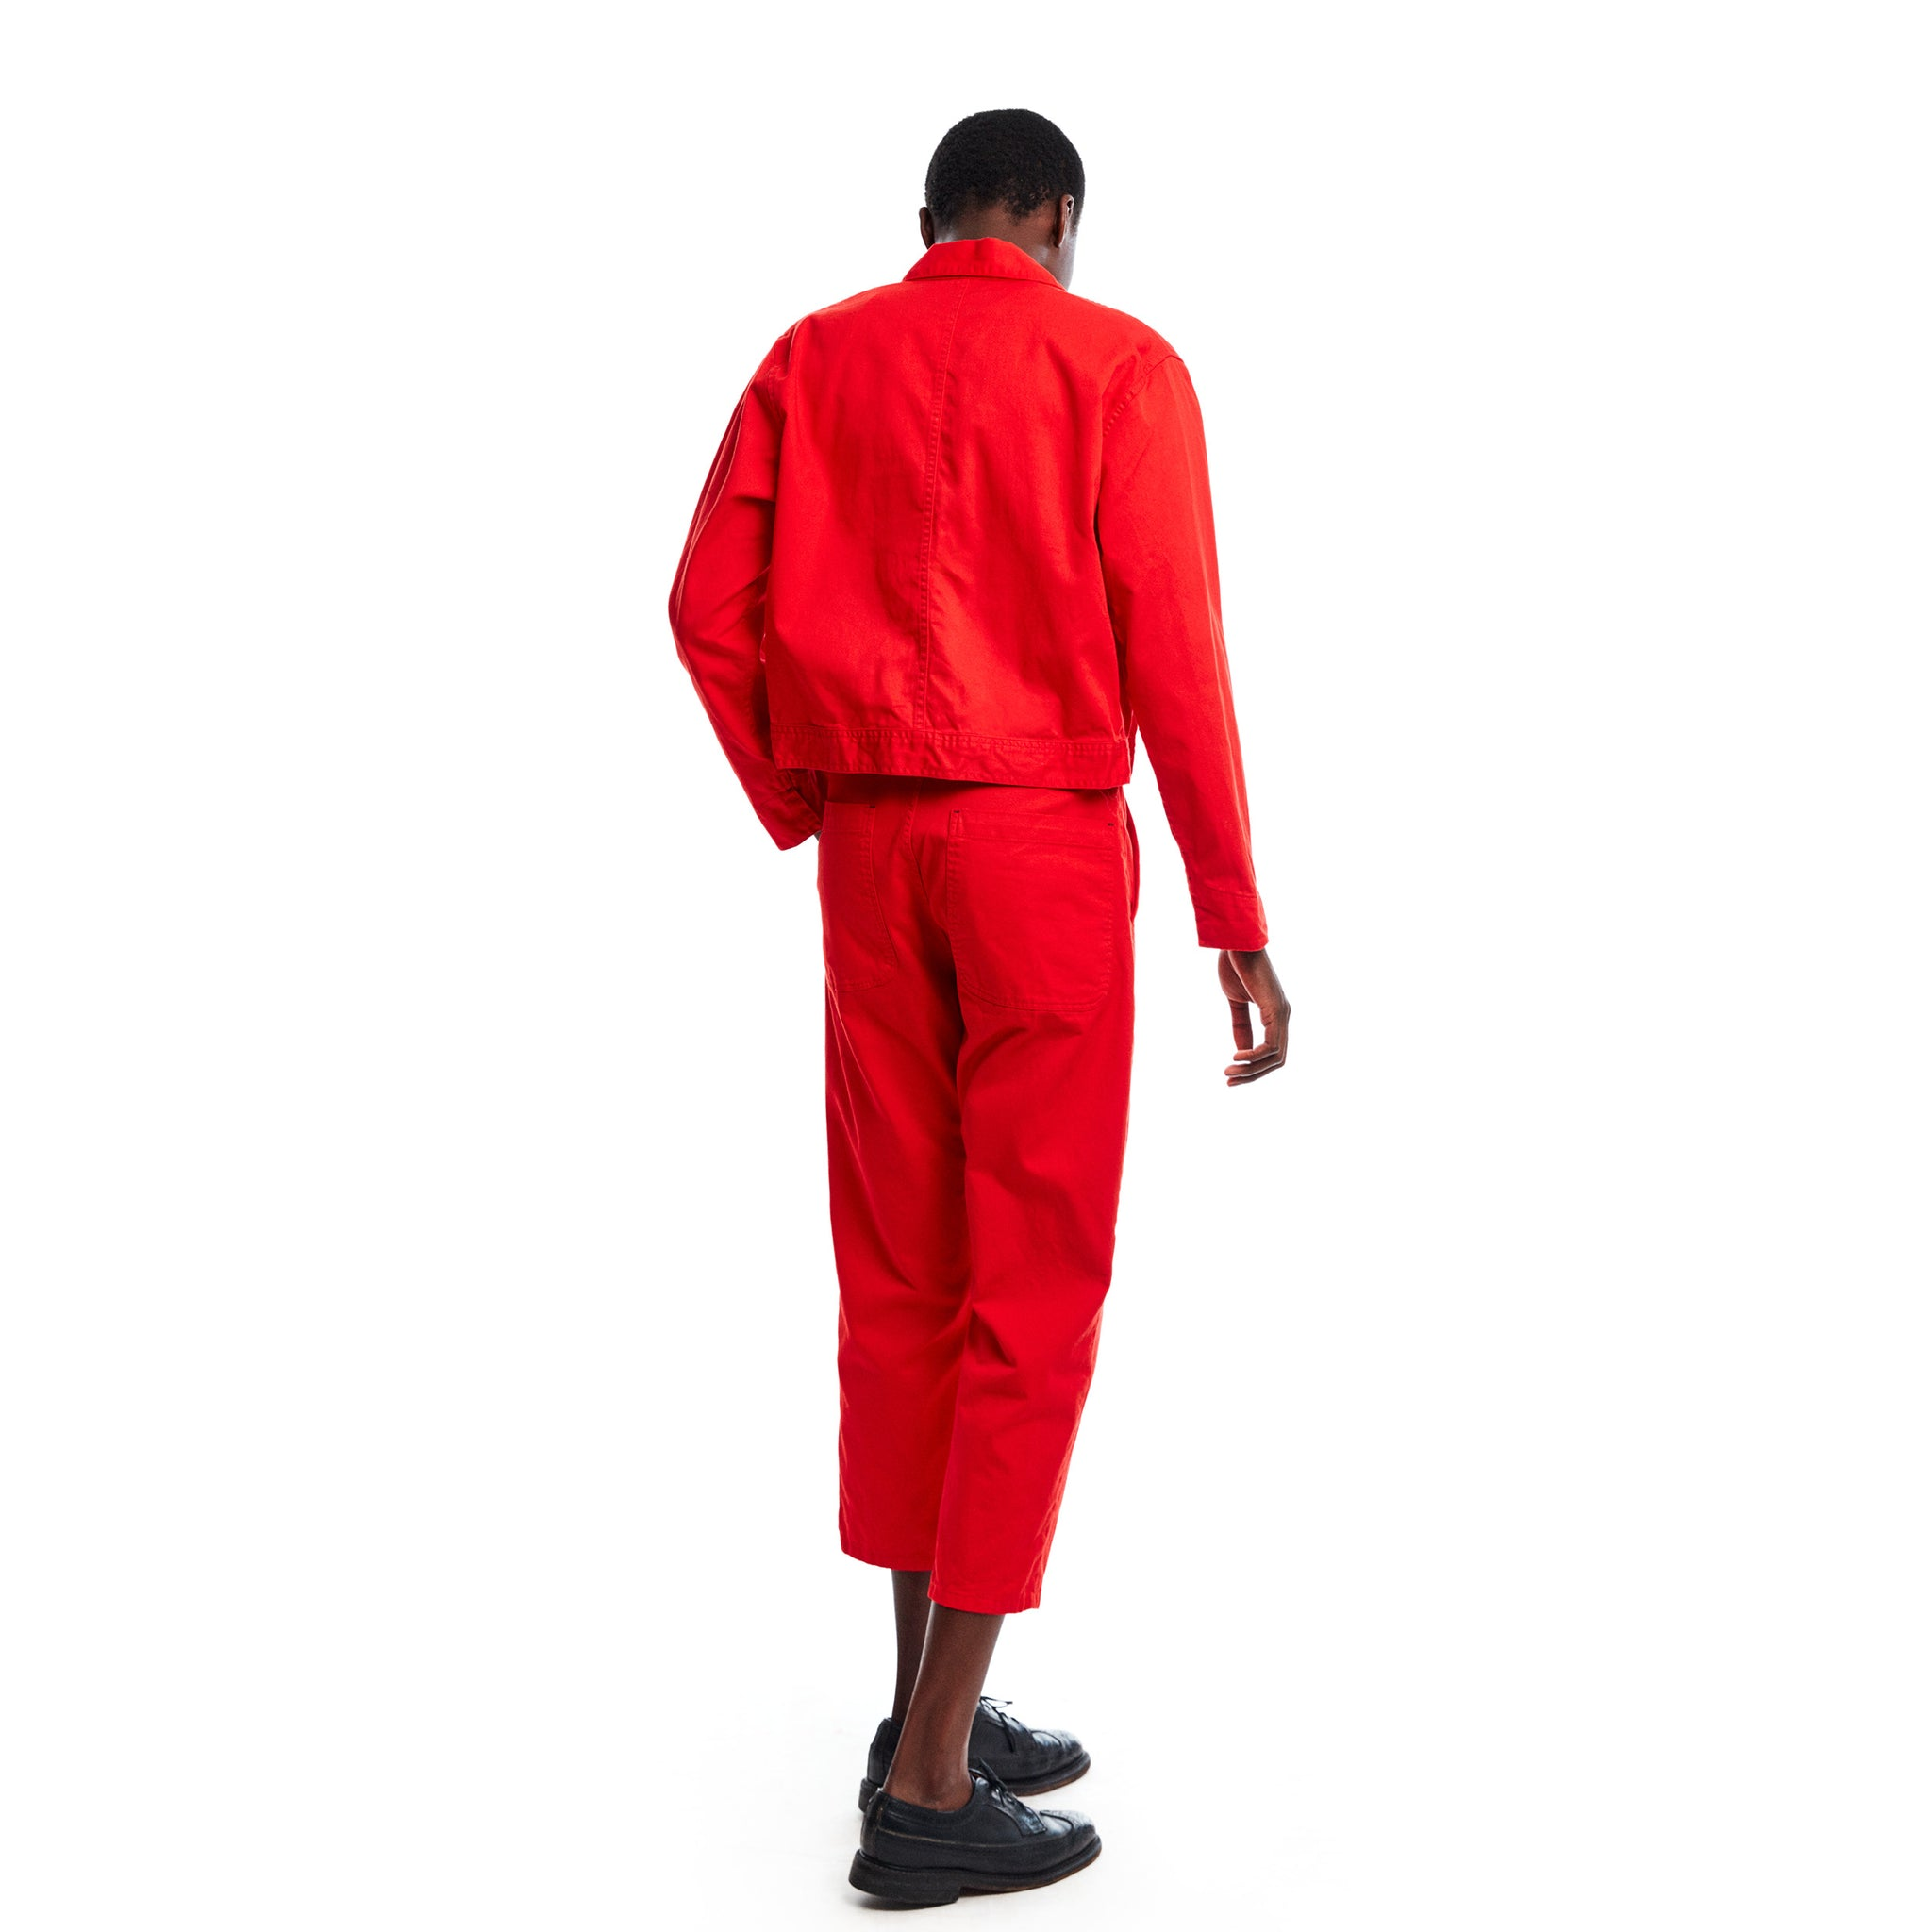 The Red Pants